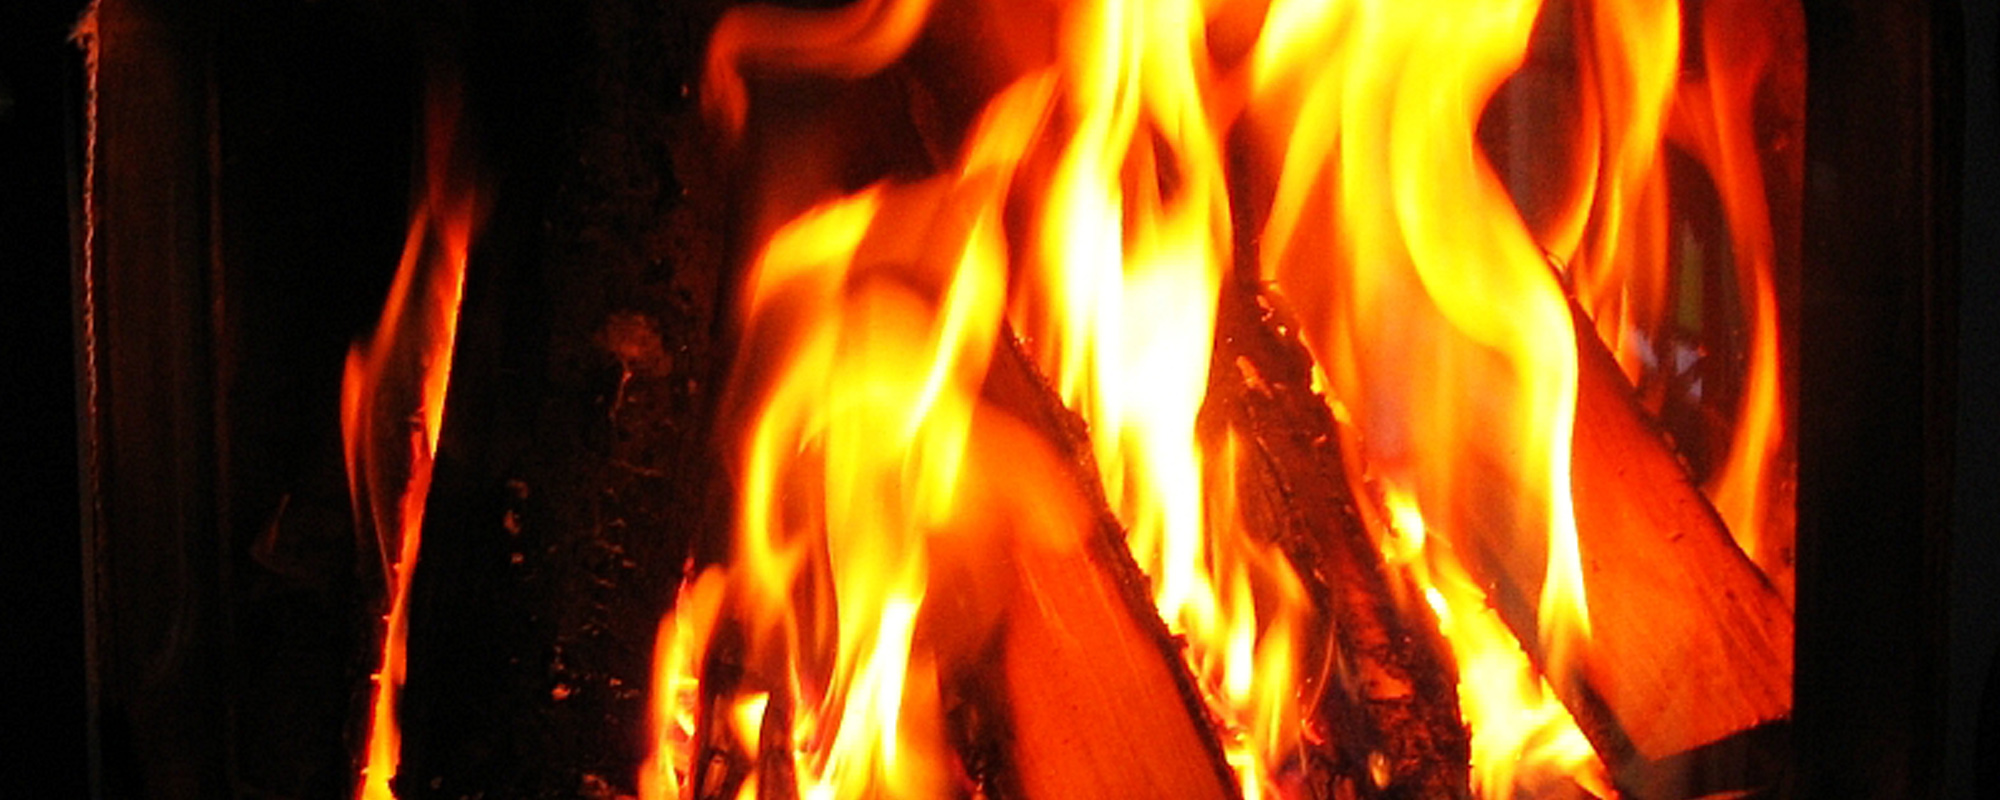 How to avoid stove fires in the home